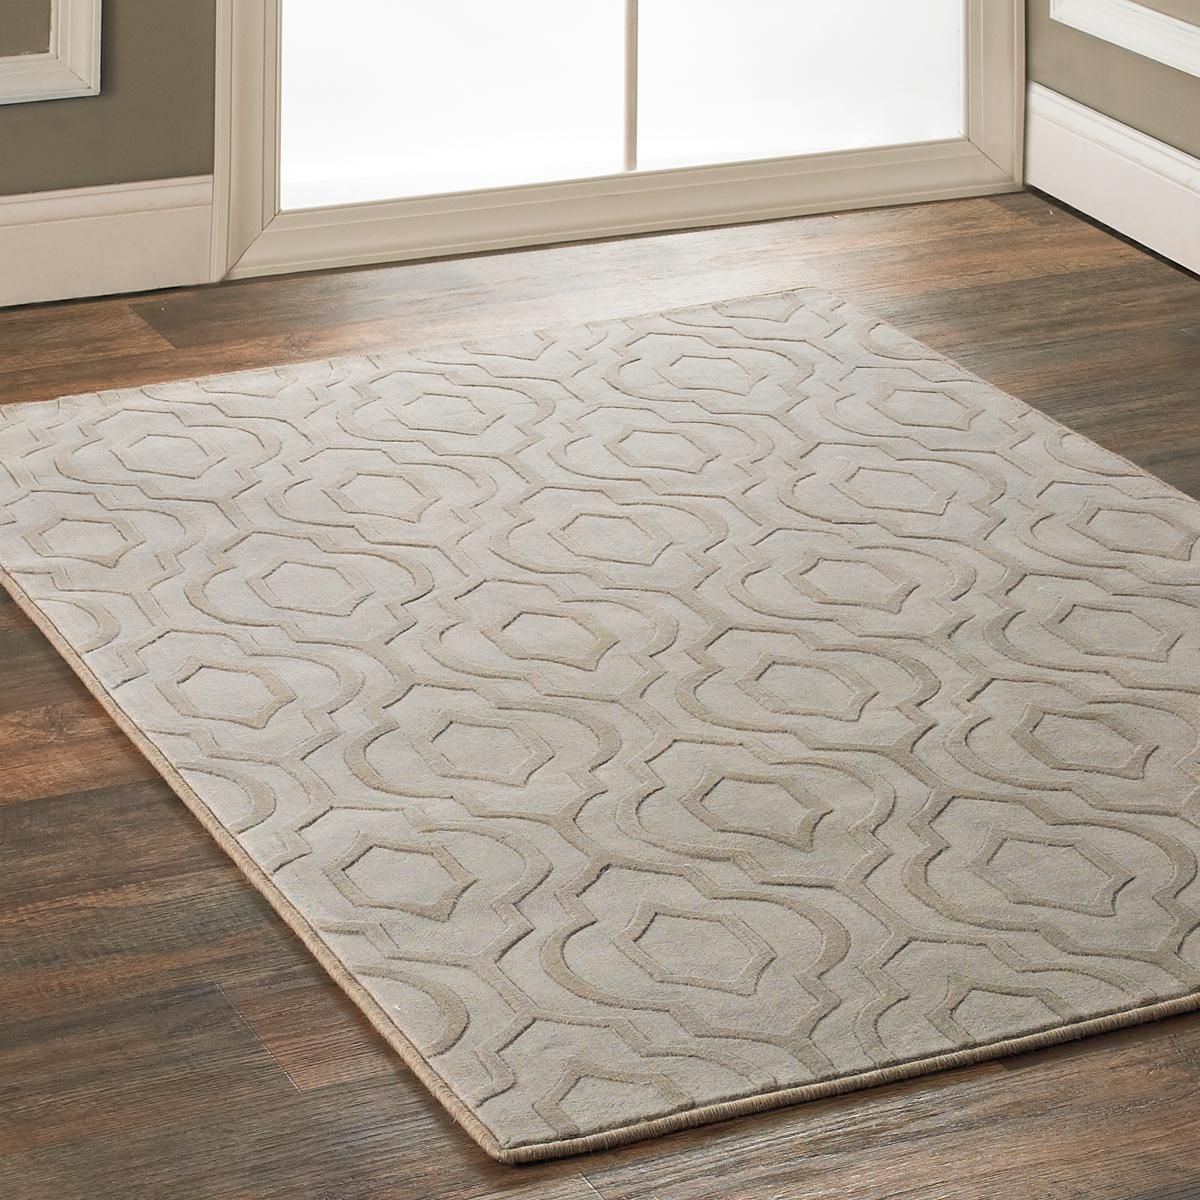 Blue Arabesque Rug Living Room: Beige Carpet Bedroom, Plush